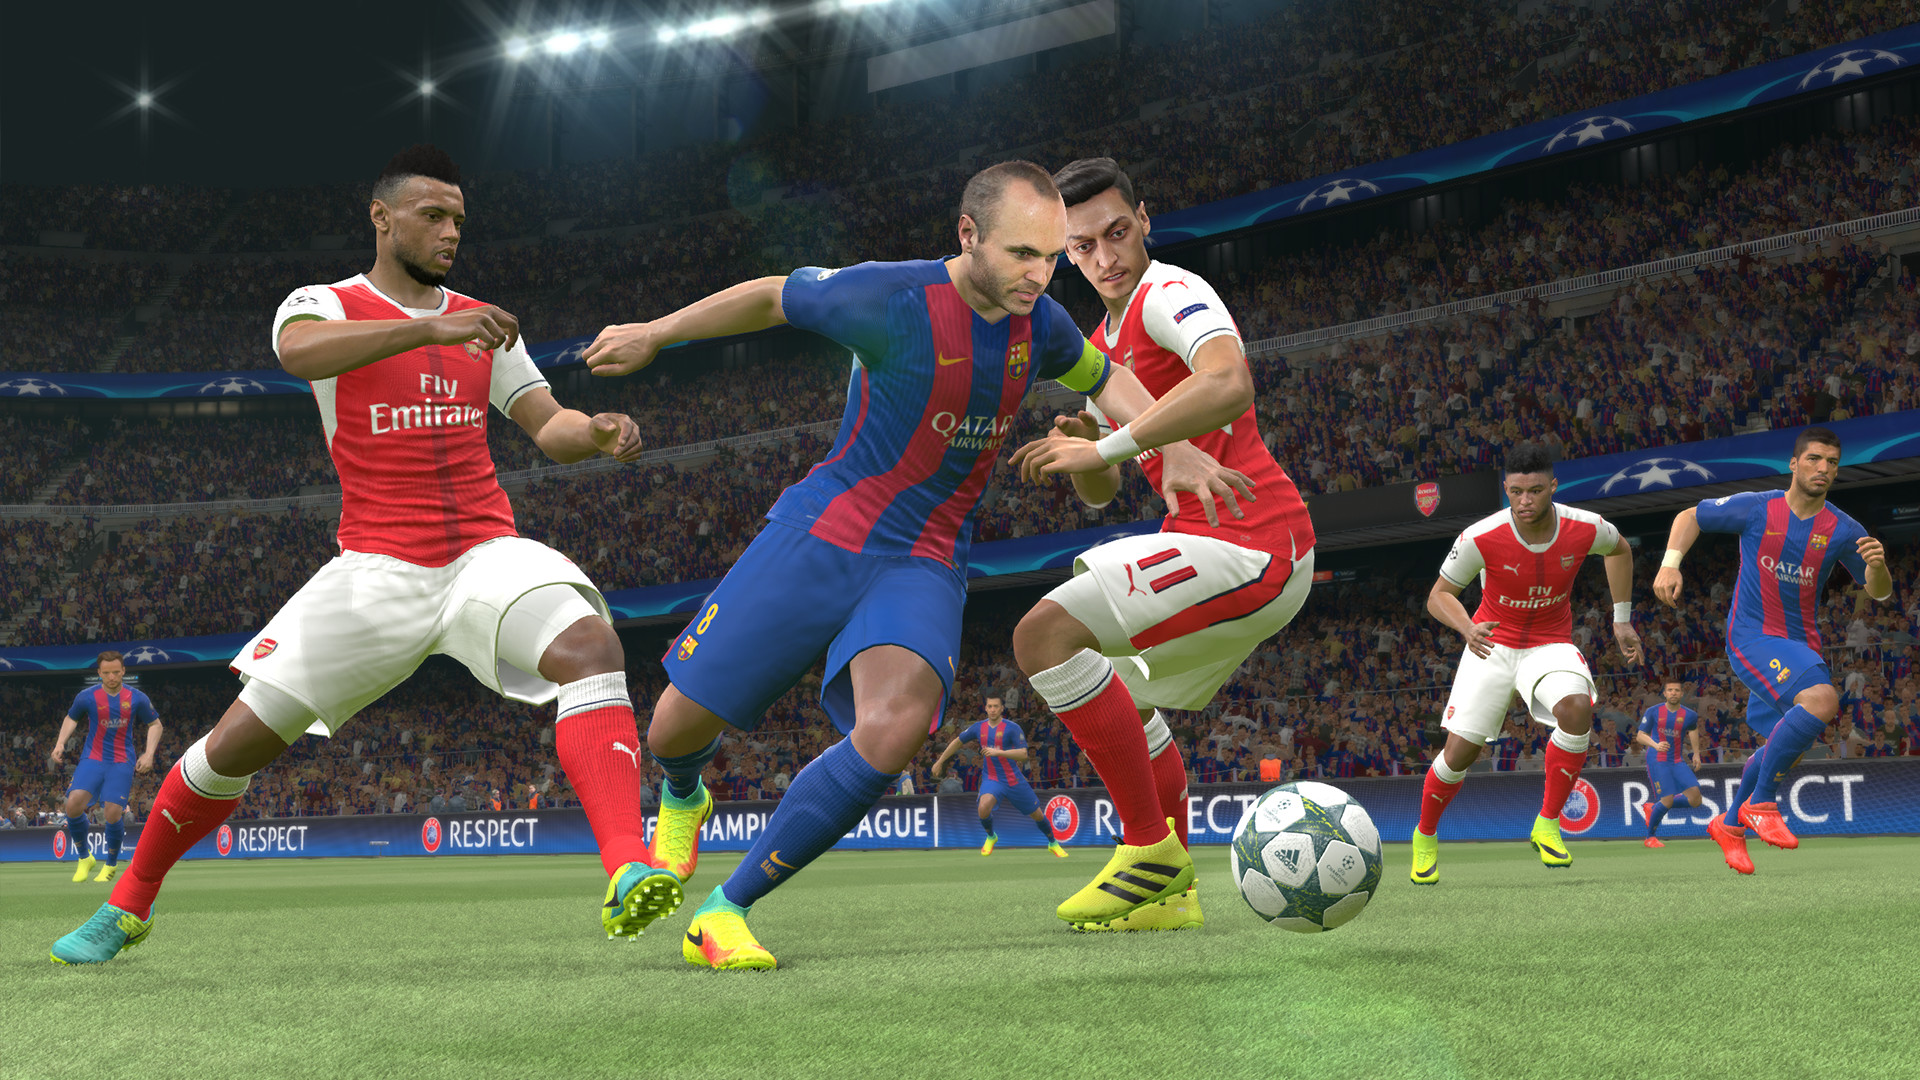 Pro Evolution Soccer 2017 screenshot1 on PCGamesCDN you can download cracked unlocked full pc version game direct free download with mirrors and torrent.